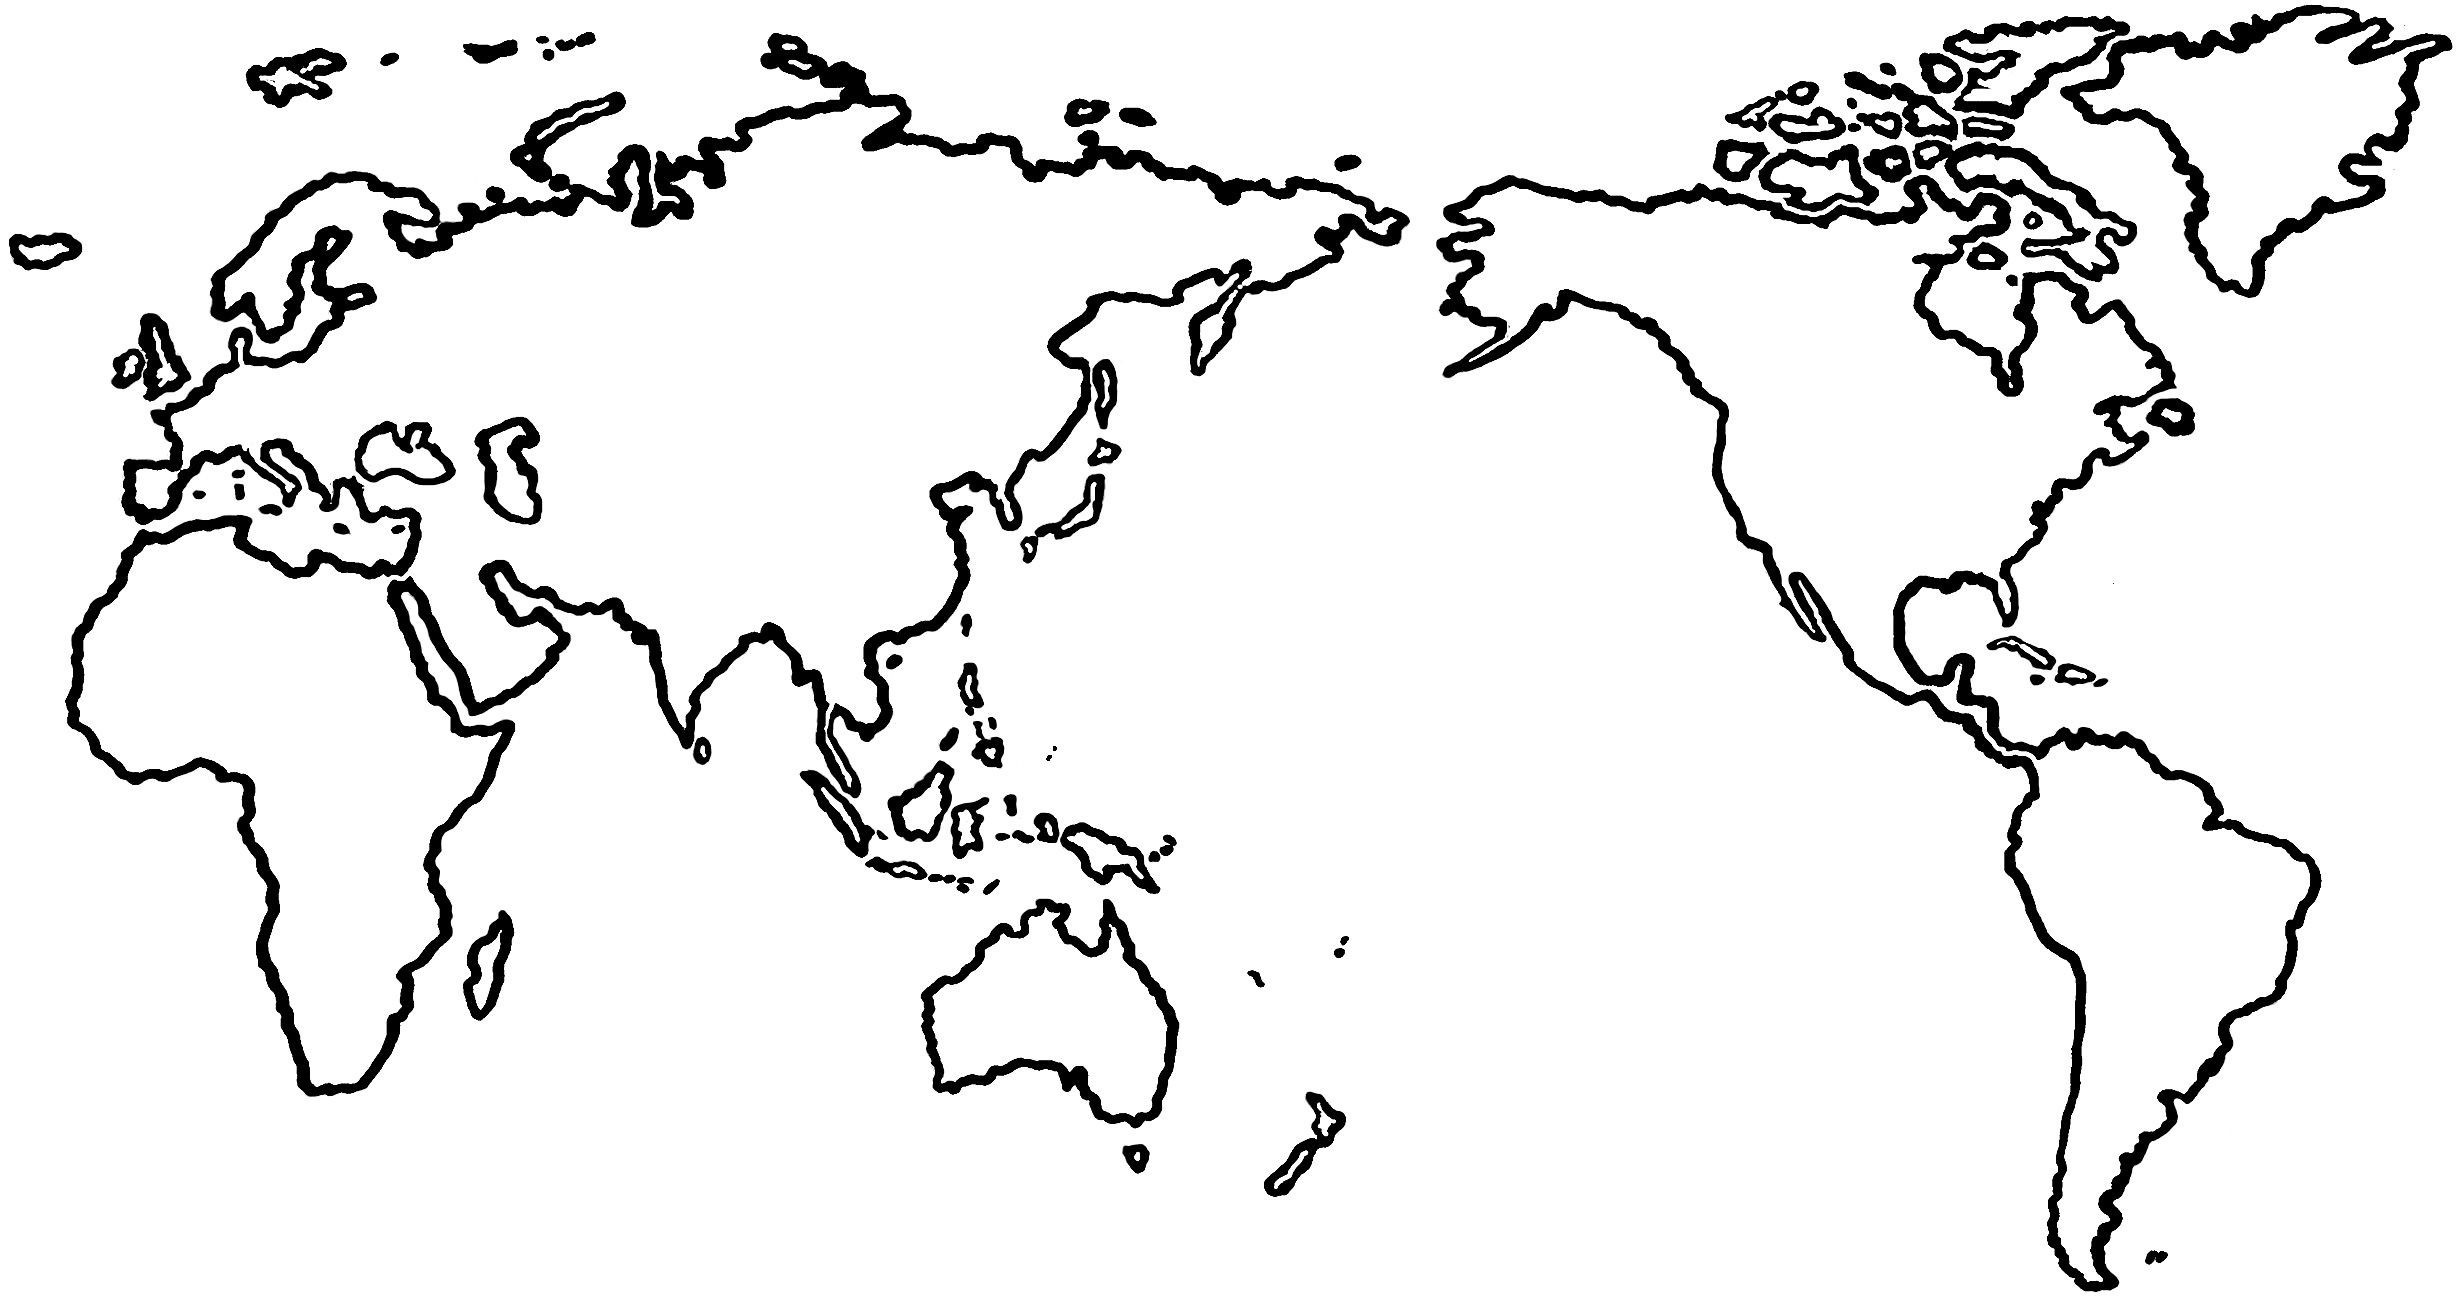 World Map Black Silhouette.